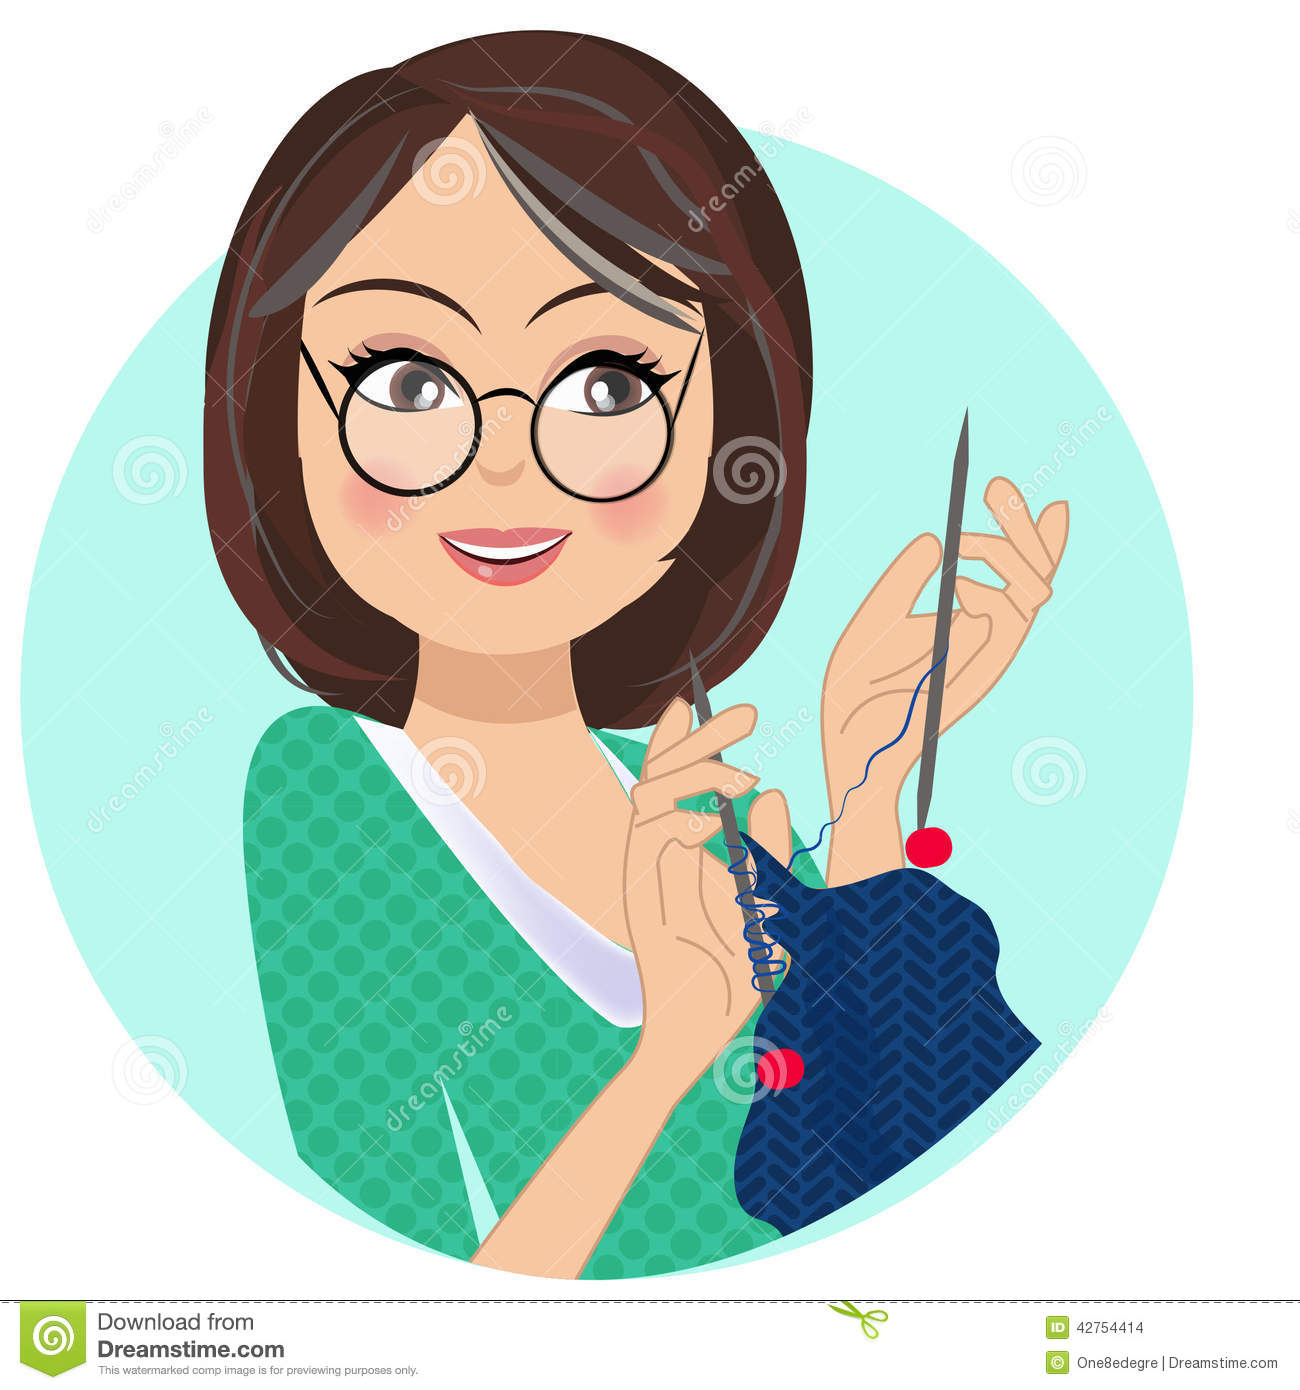 Person Knitting Clipart : A portrait of crafting woman knitting stock vector